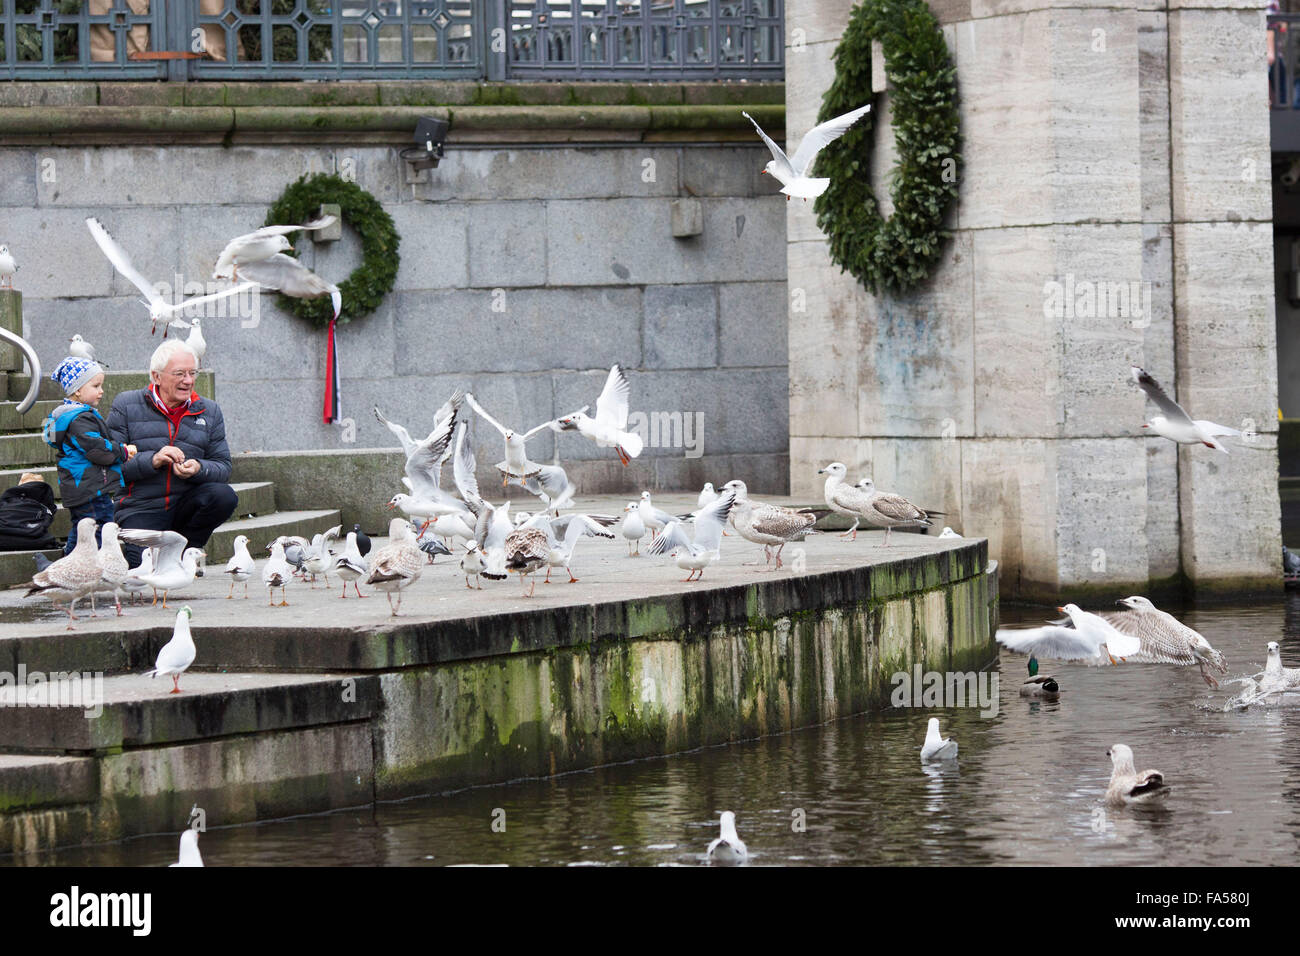 Hamburg Germany. An old man and a boy feed birds from the bank of the Kleine Alster near the Rathaus - Stock Image